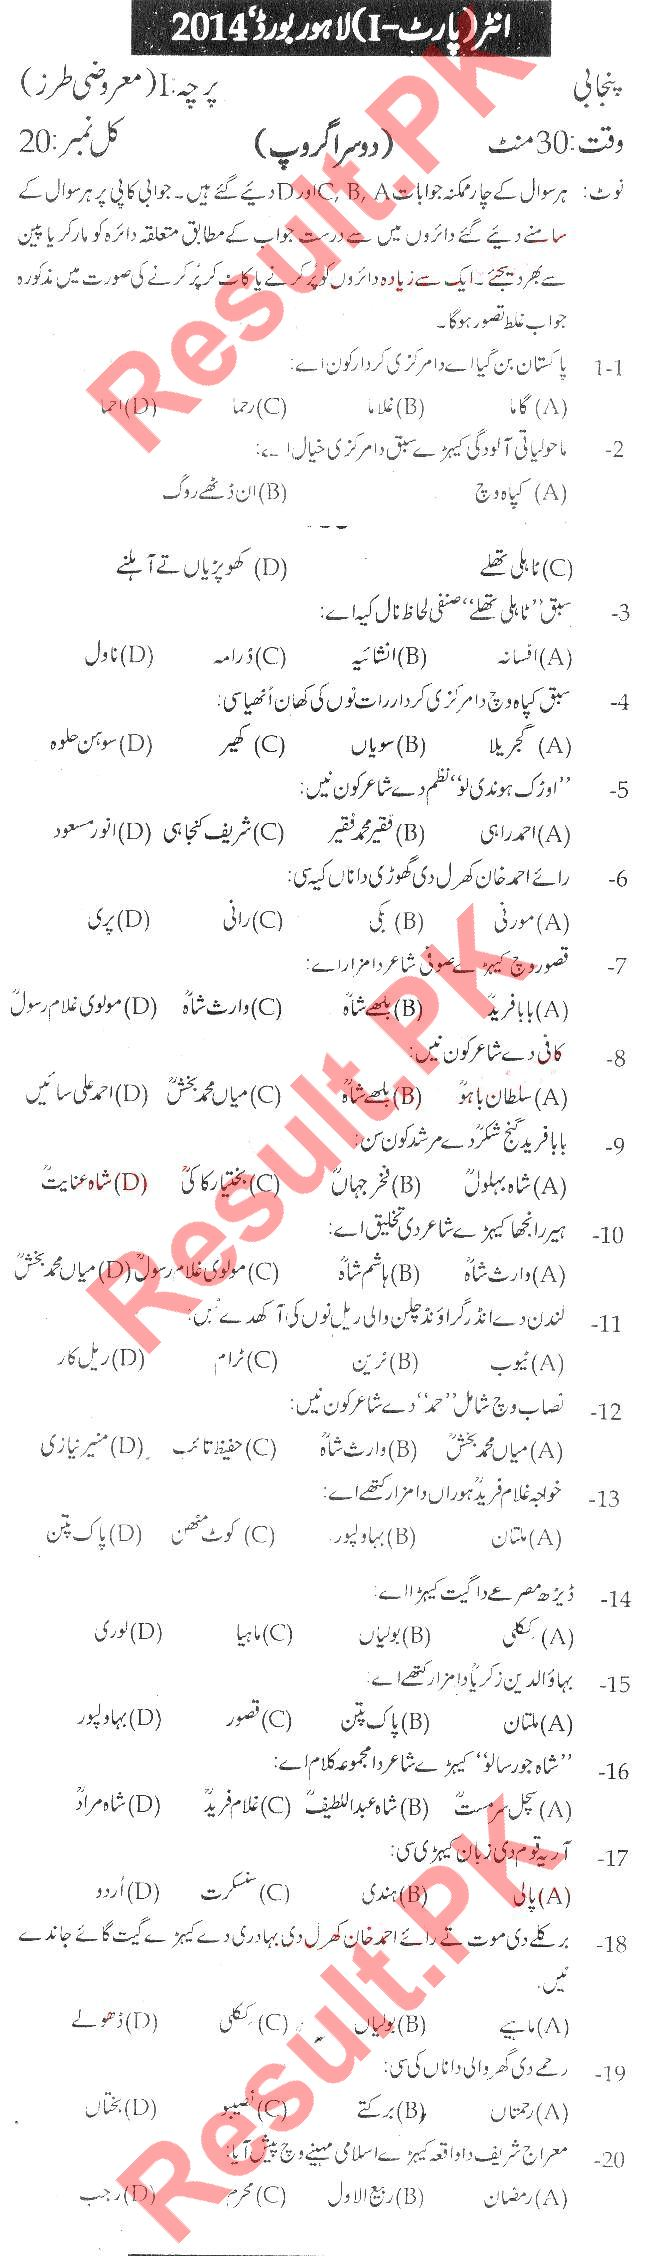 physics past papers intermediate 2 lahore board 9733 essay academic physics past papers intermediate 2 lahore board